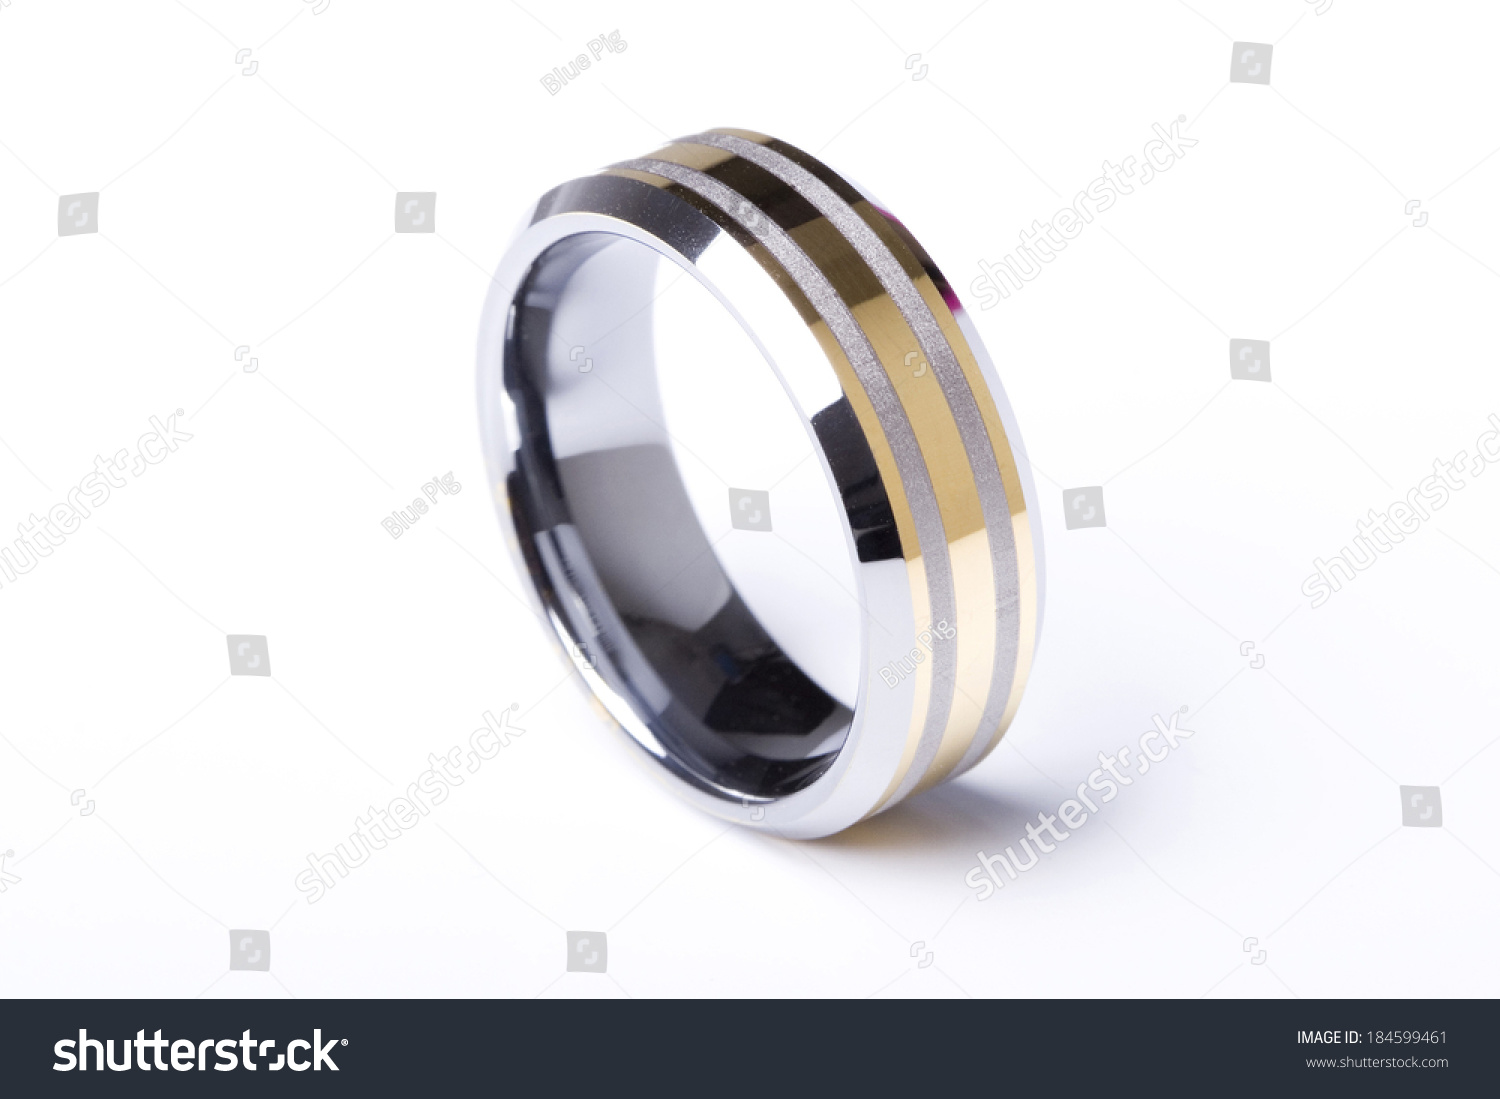 a plain wedding ring band made out of silver and gold